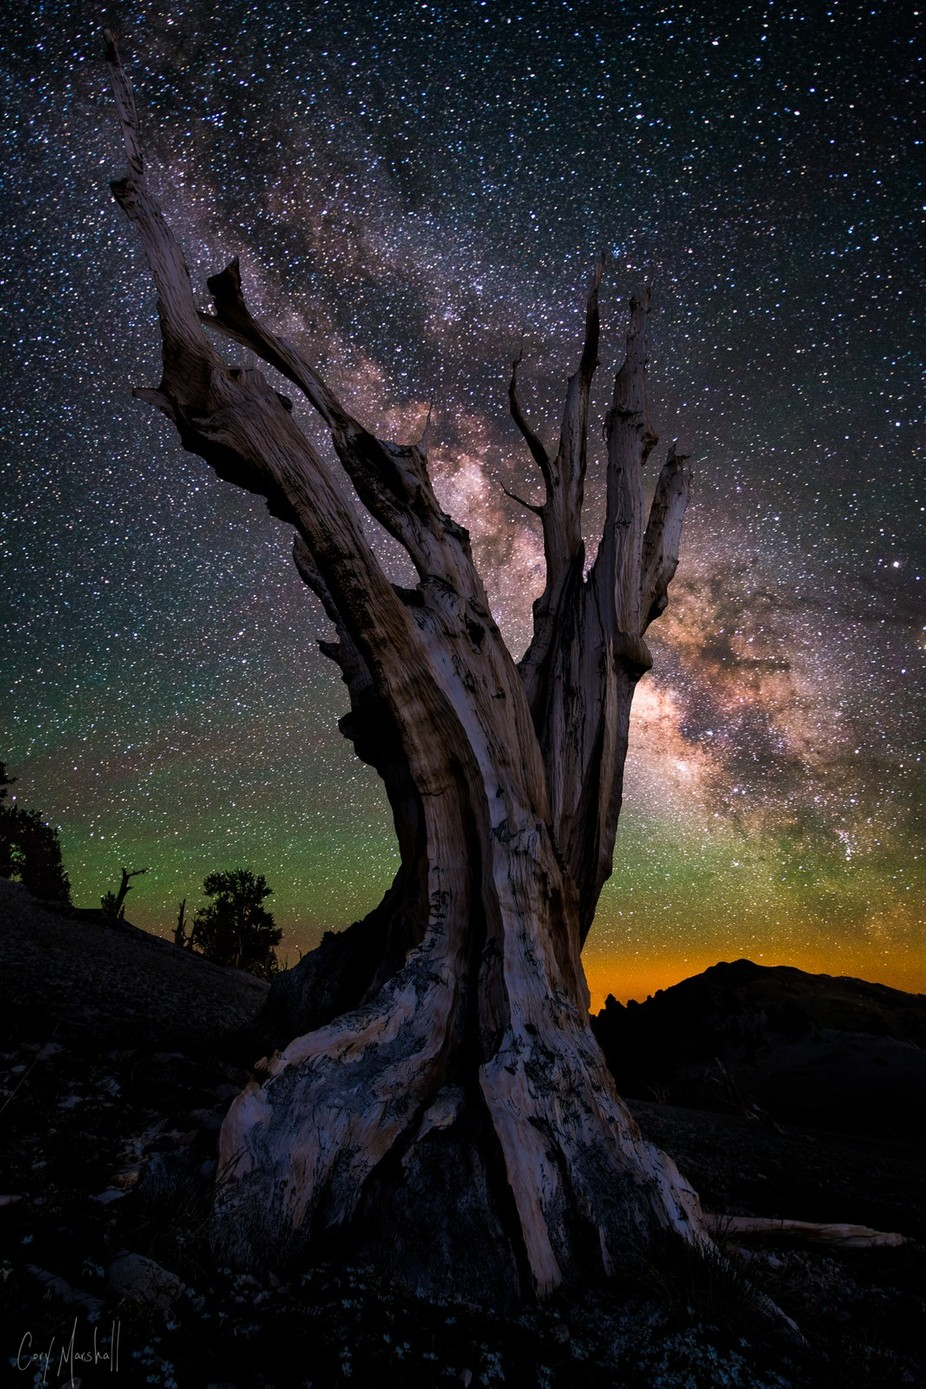 Ghost by corymarshall - Capture The Milky Way Photo Contest